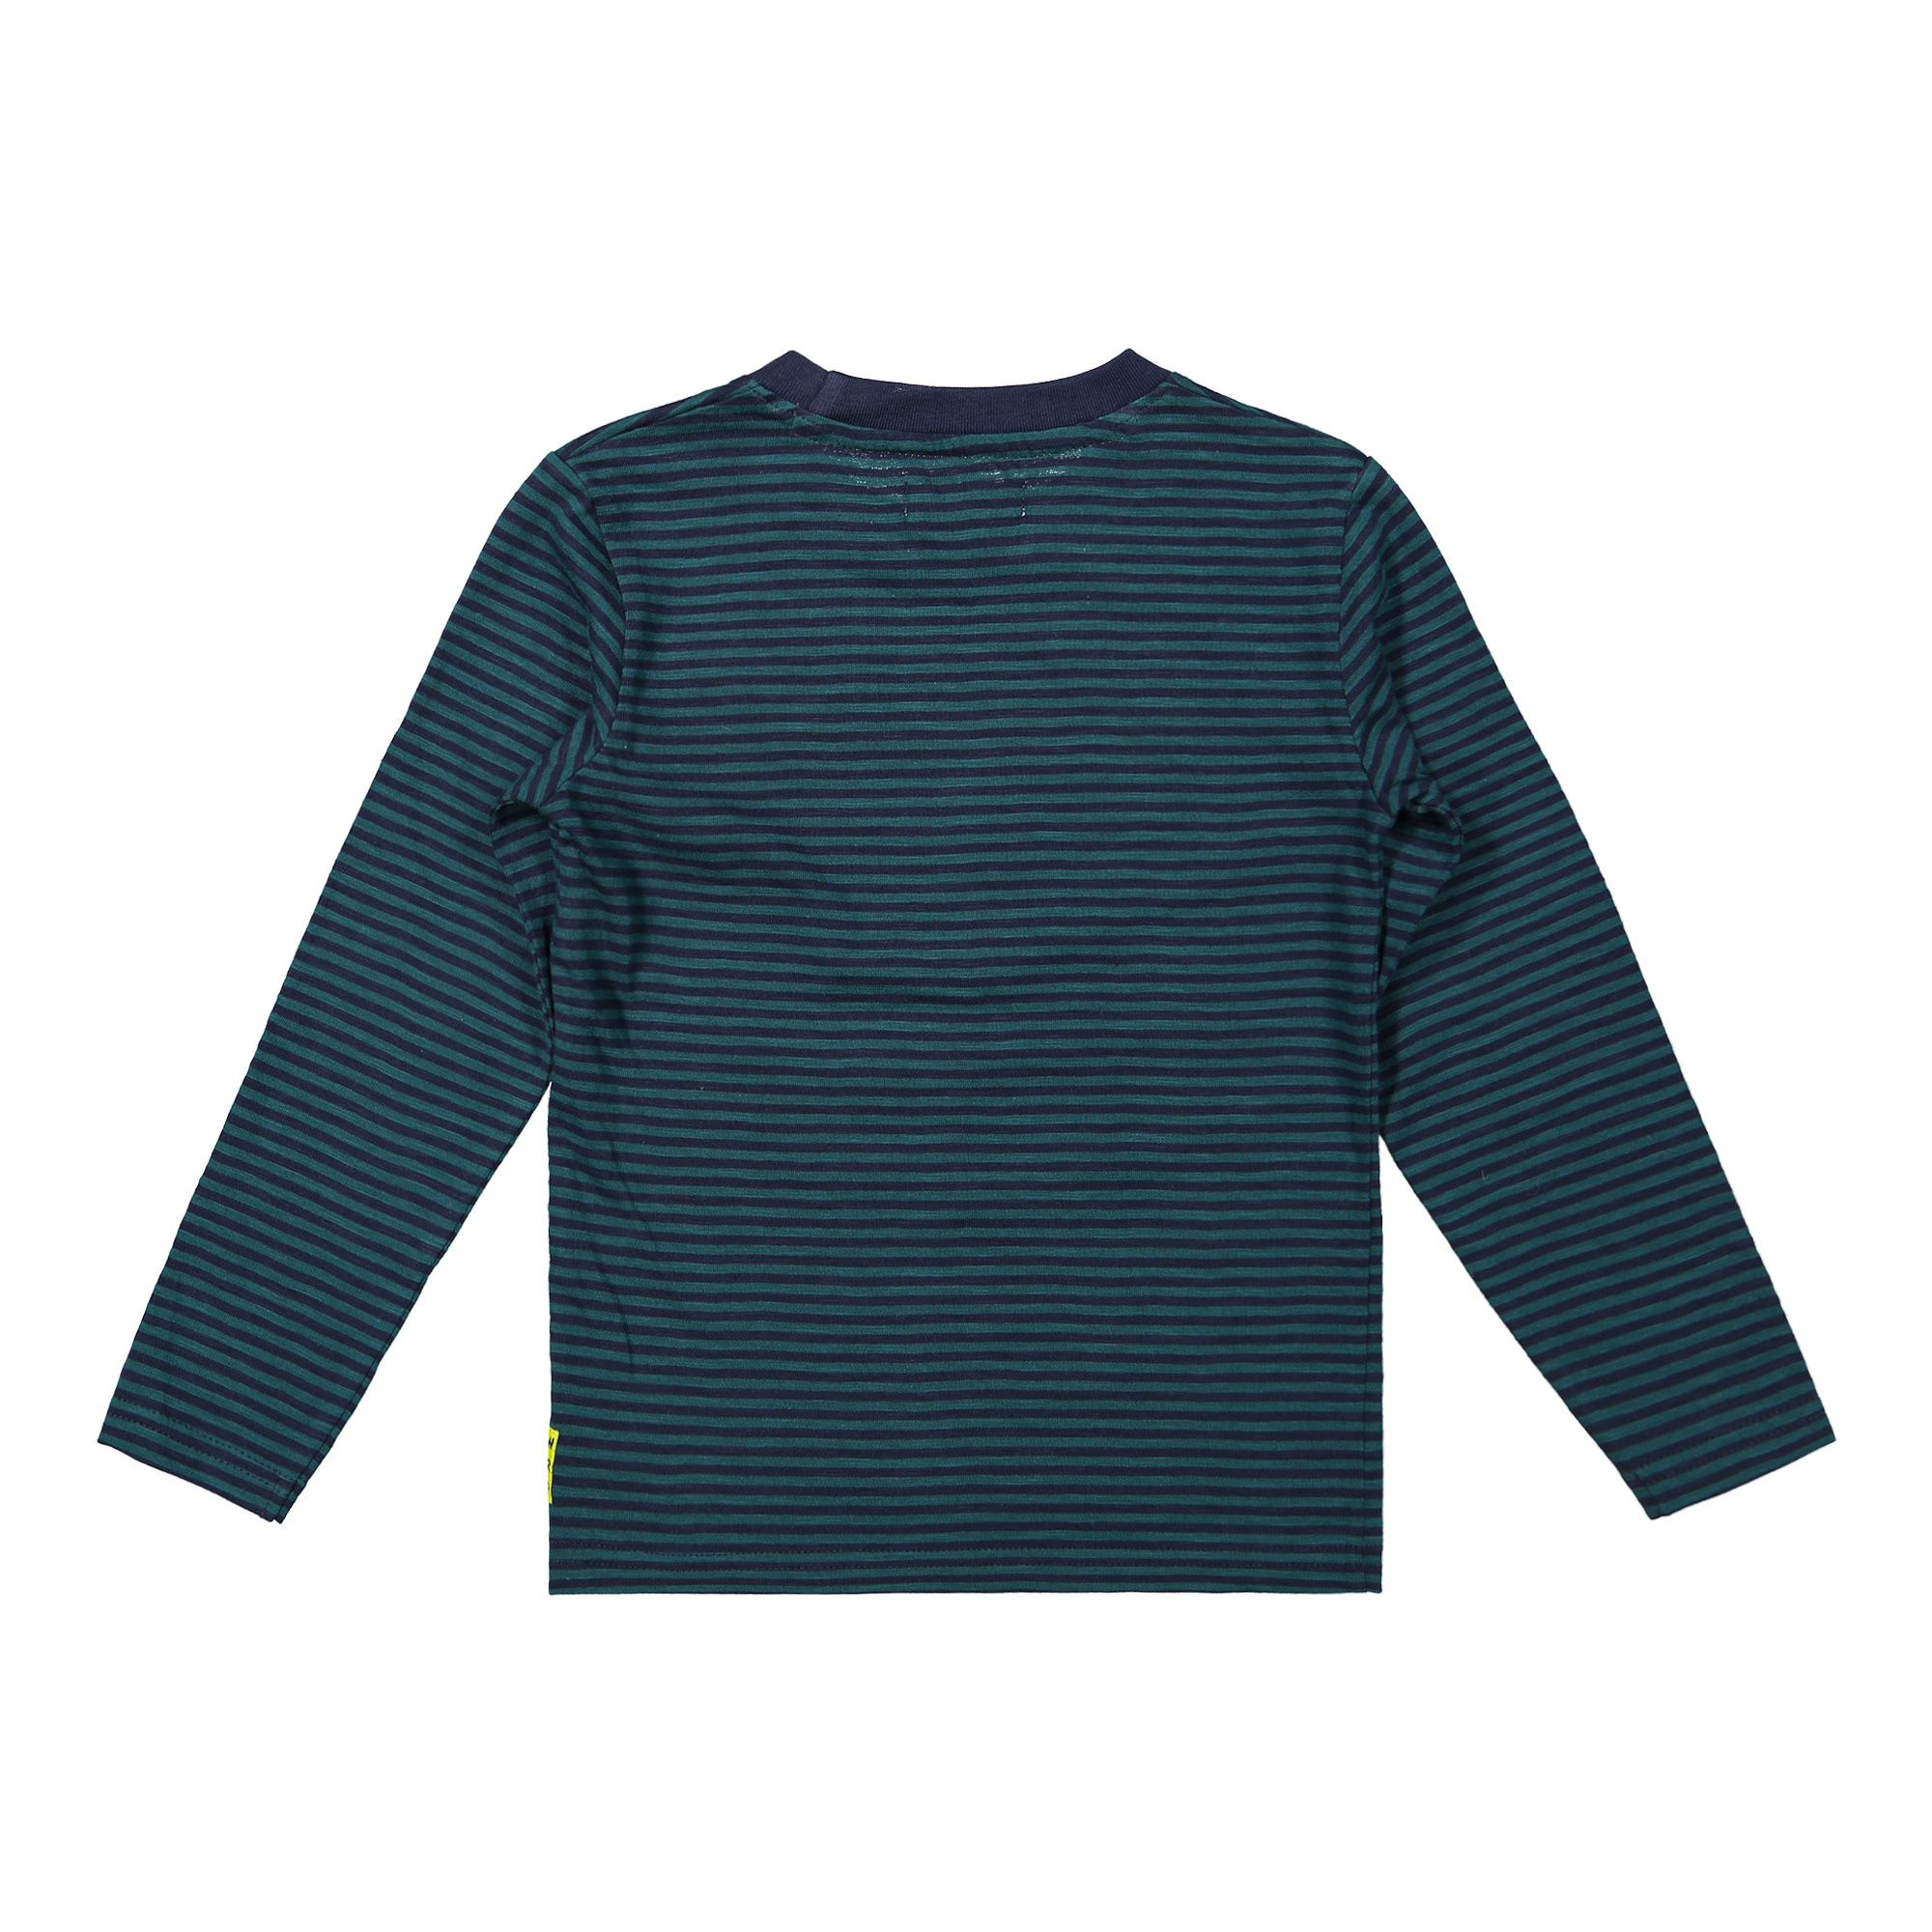 Striped Long Sleeved Shirt with Zipper Accent